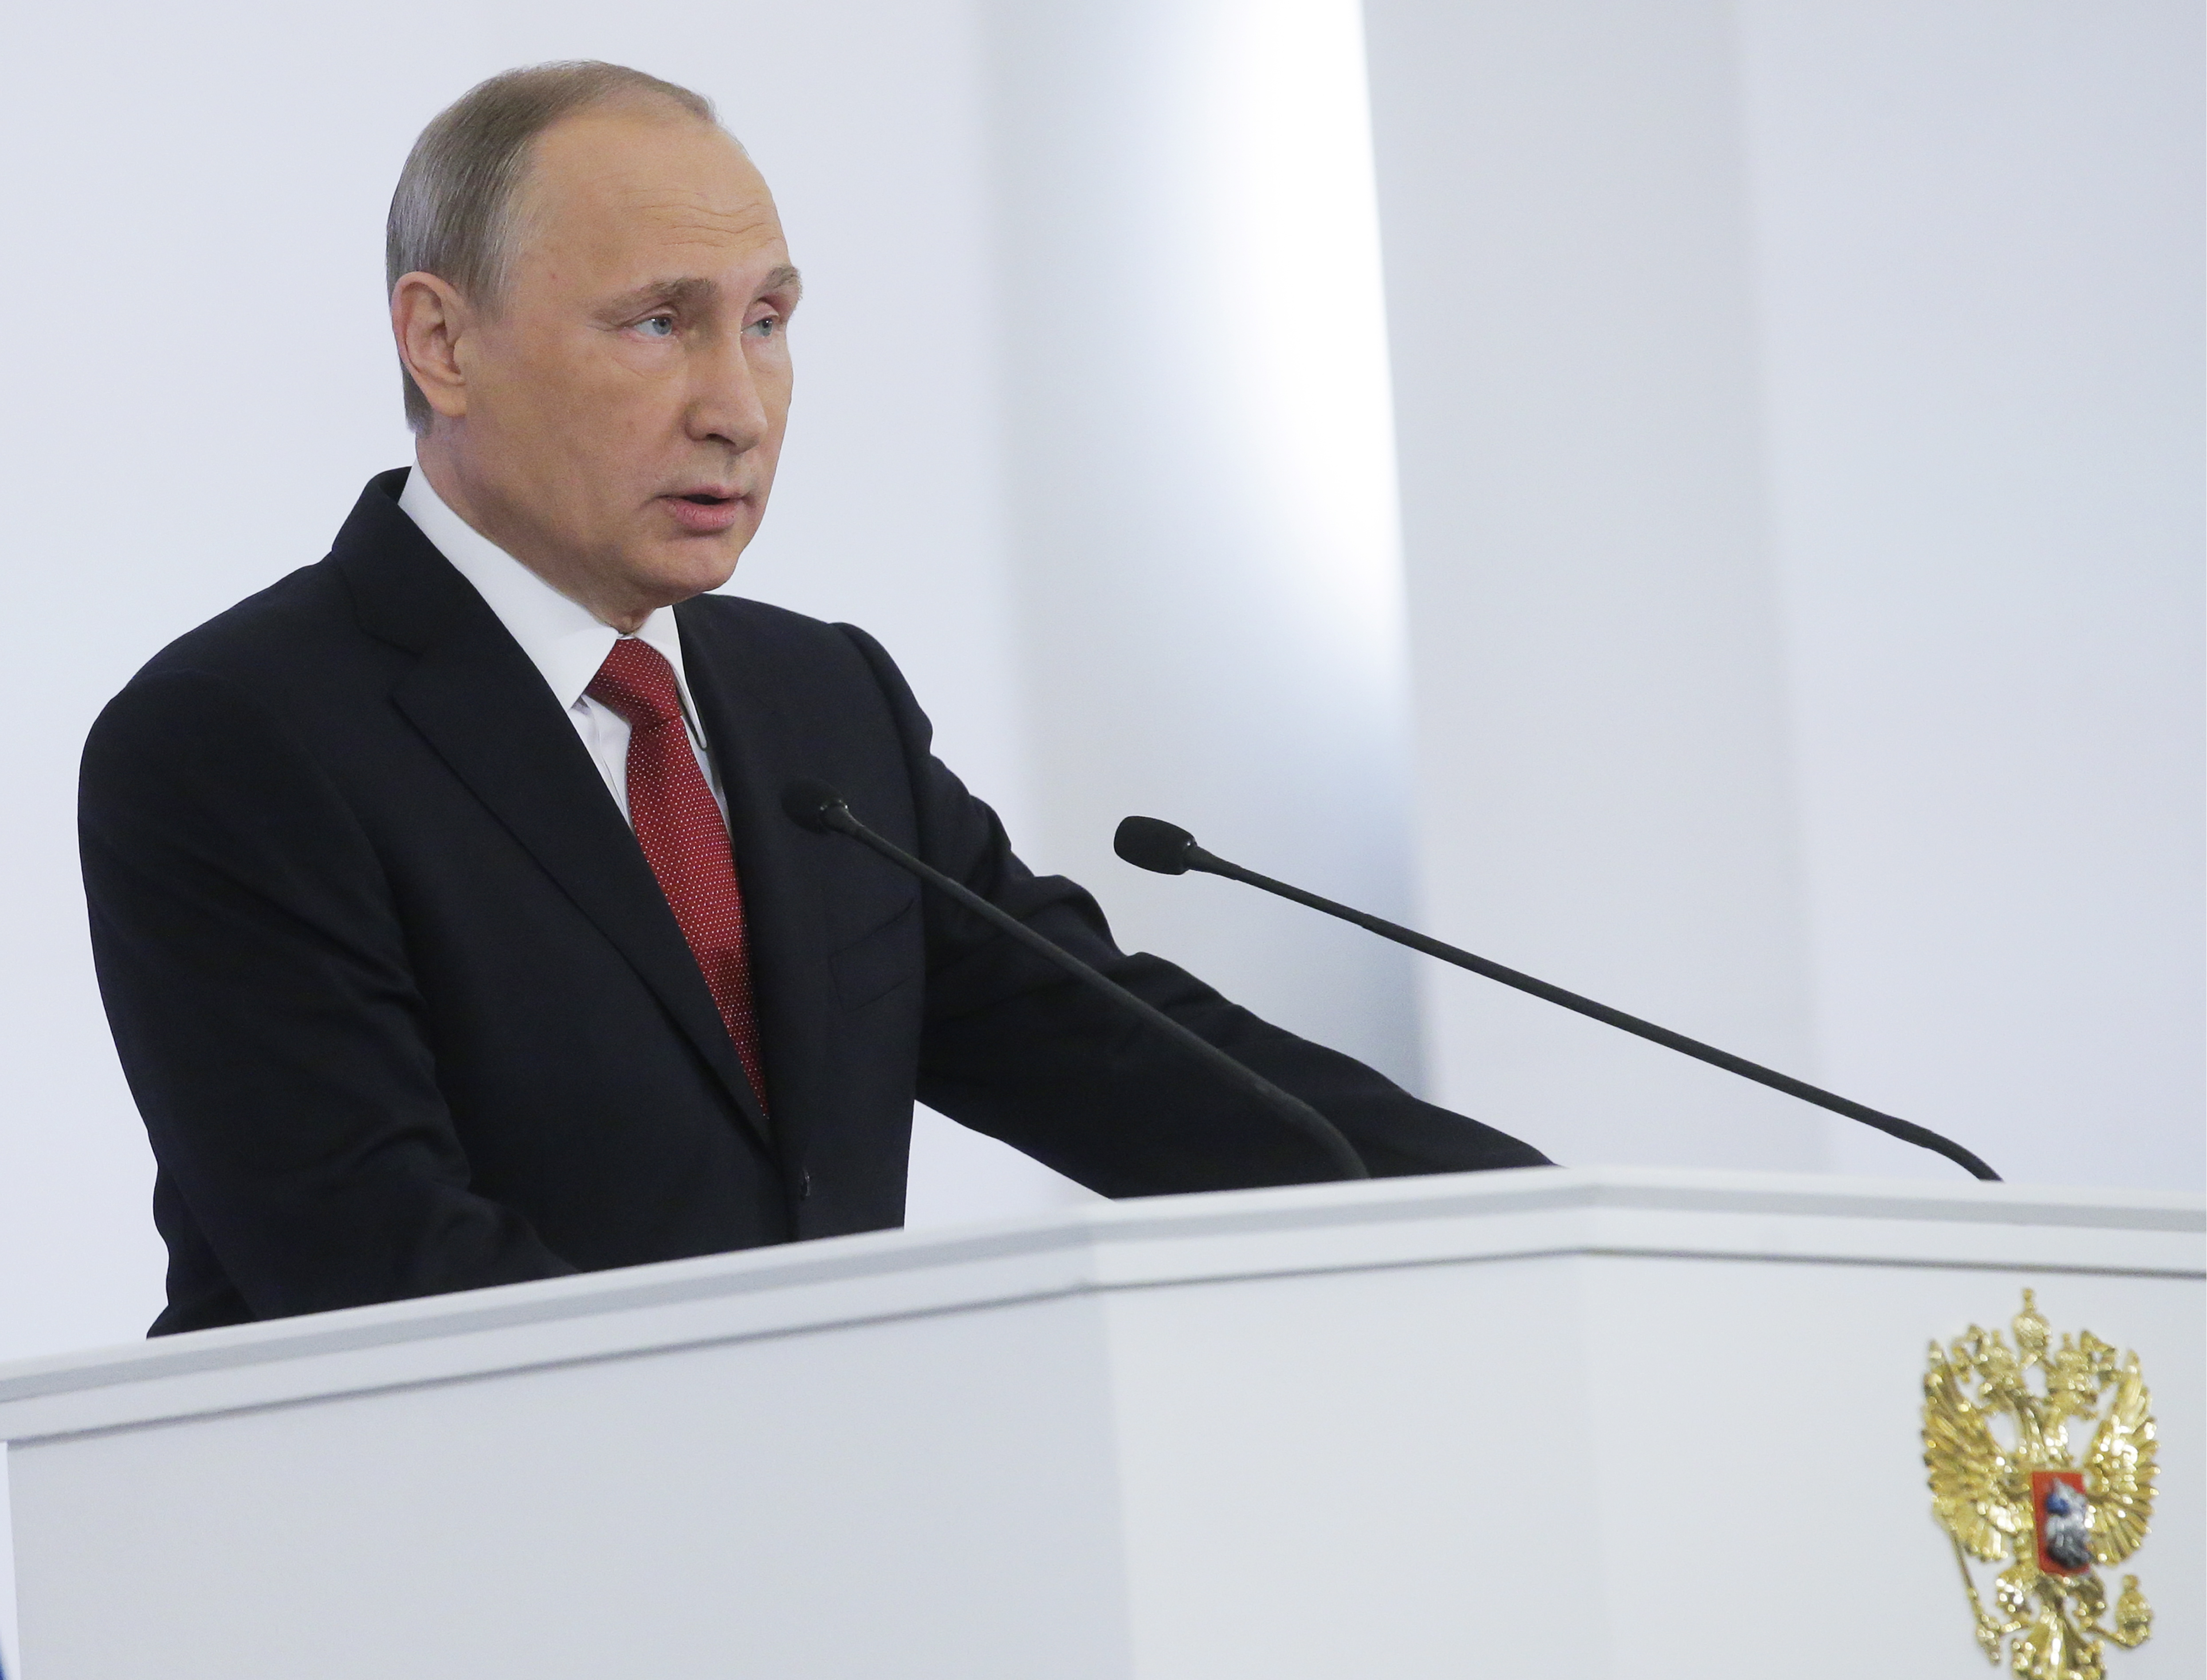 Russia's President Vladimir Putin delivers his annual address to the Russian Federal Assembly at the Moscow Kremlin.